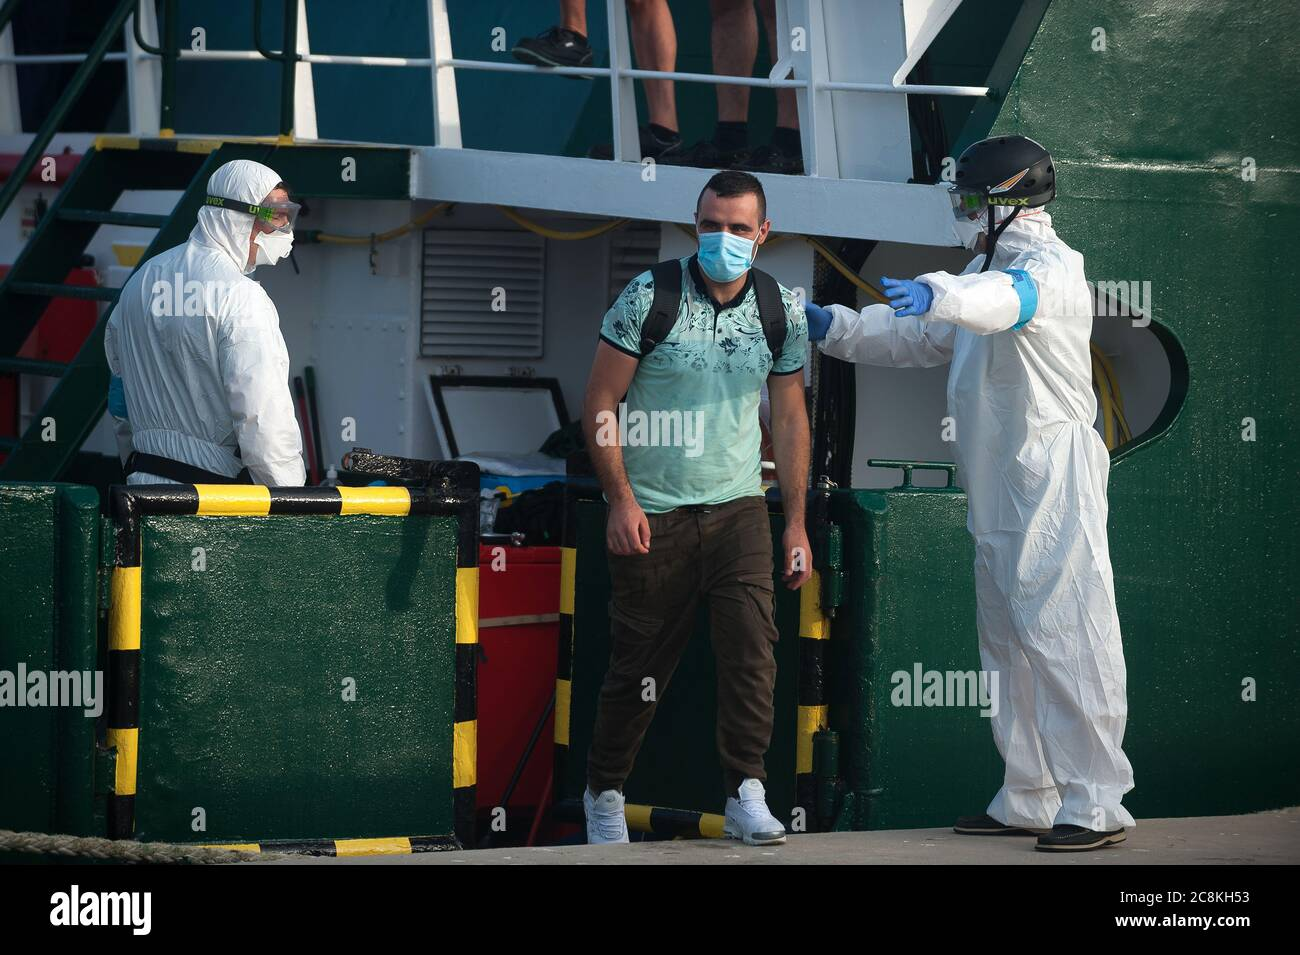 Members of European Border and Coast Guard Agency (Frontex) help a migrant to disembark from a patrol vessel at Malaga port after being intercepted by Spanish Civil Guards authorities on the Mediterranean Sea.A Spanish Civil Guard vessel intercepted around 82 Algerian migrants near Almeria's coast while trying to reach Europe by small boats. During the coronavirus pandemic, the closure of Morocco's border with Spain as a measure to prevent the spread of coronavirus disease has caused a drastic drop in the number of migrants that try to reach the Spanish coasts across Alboran Sea route, while t Stock Photo